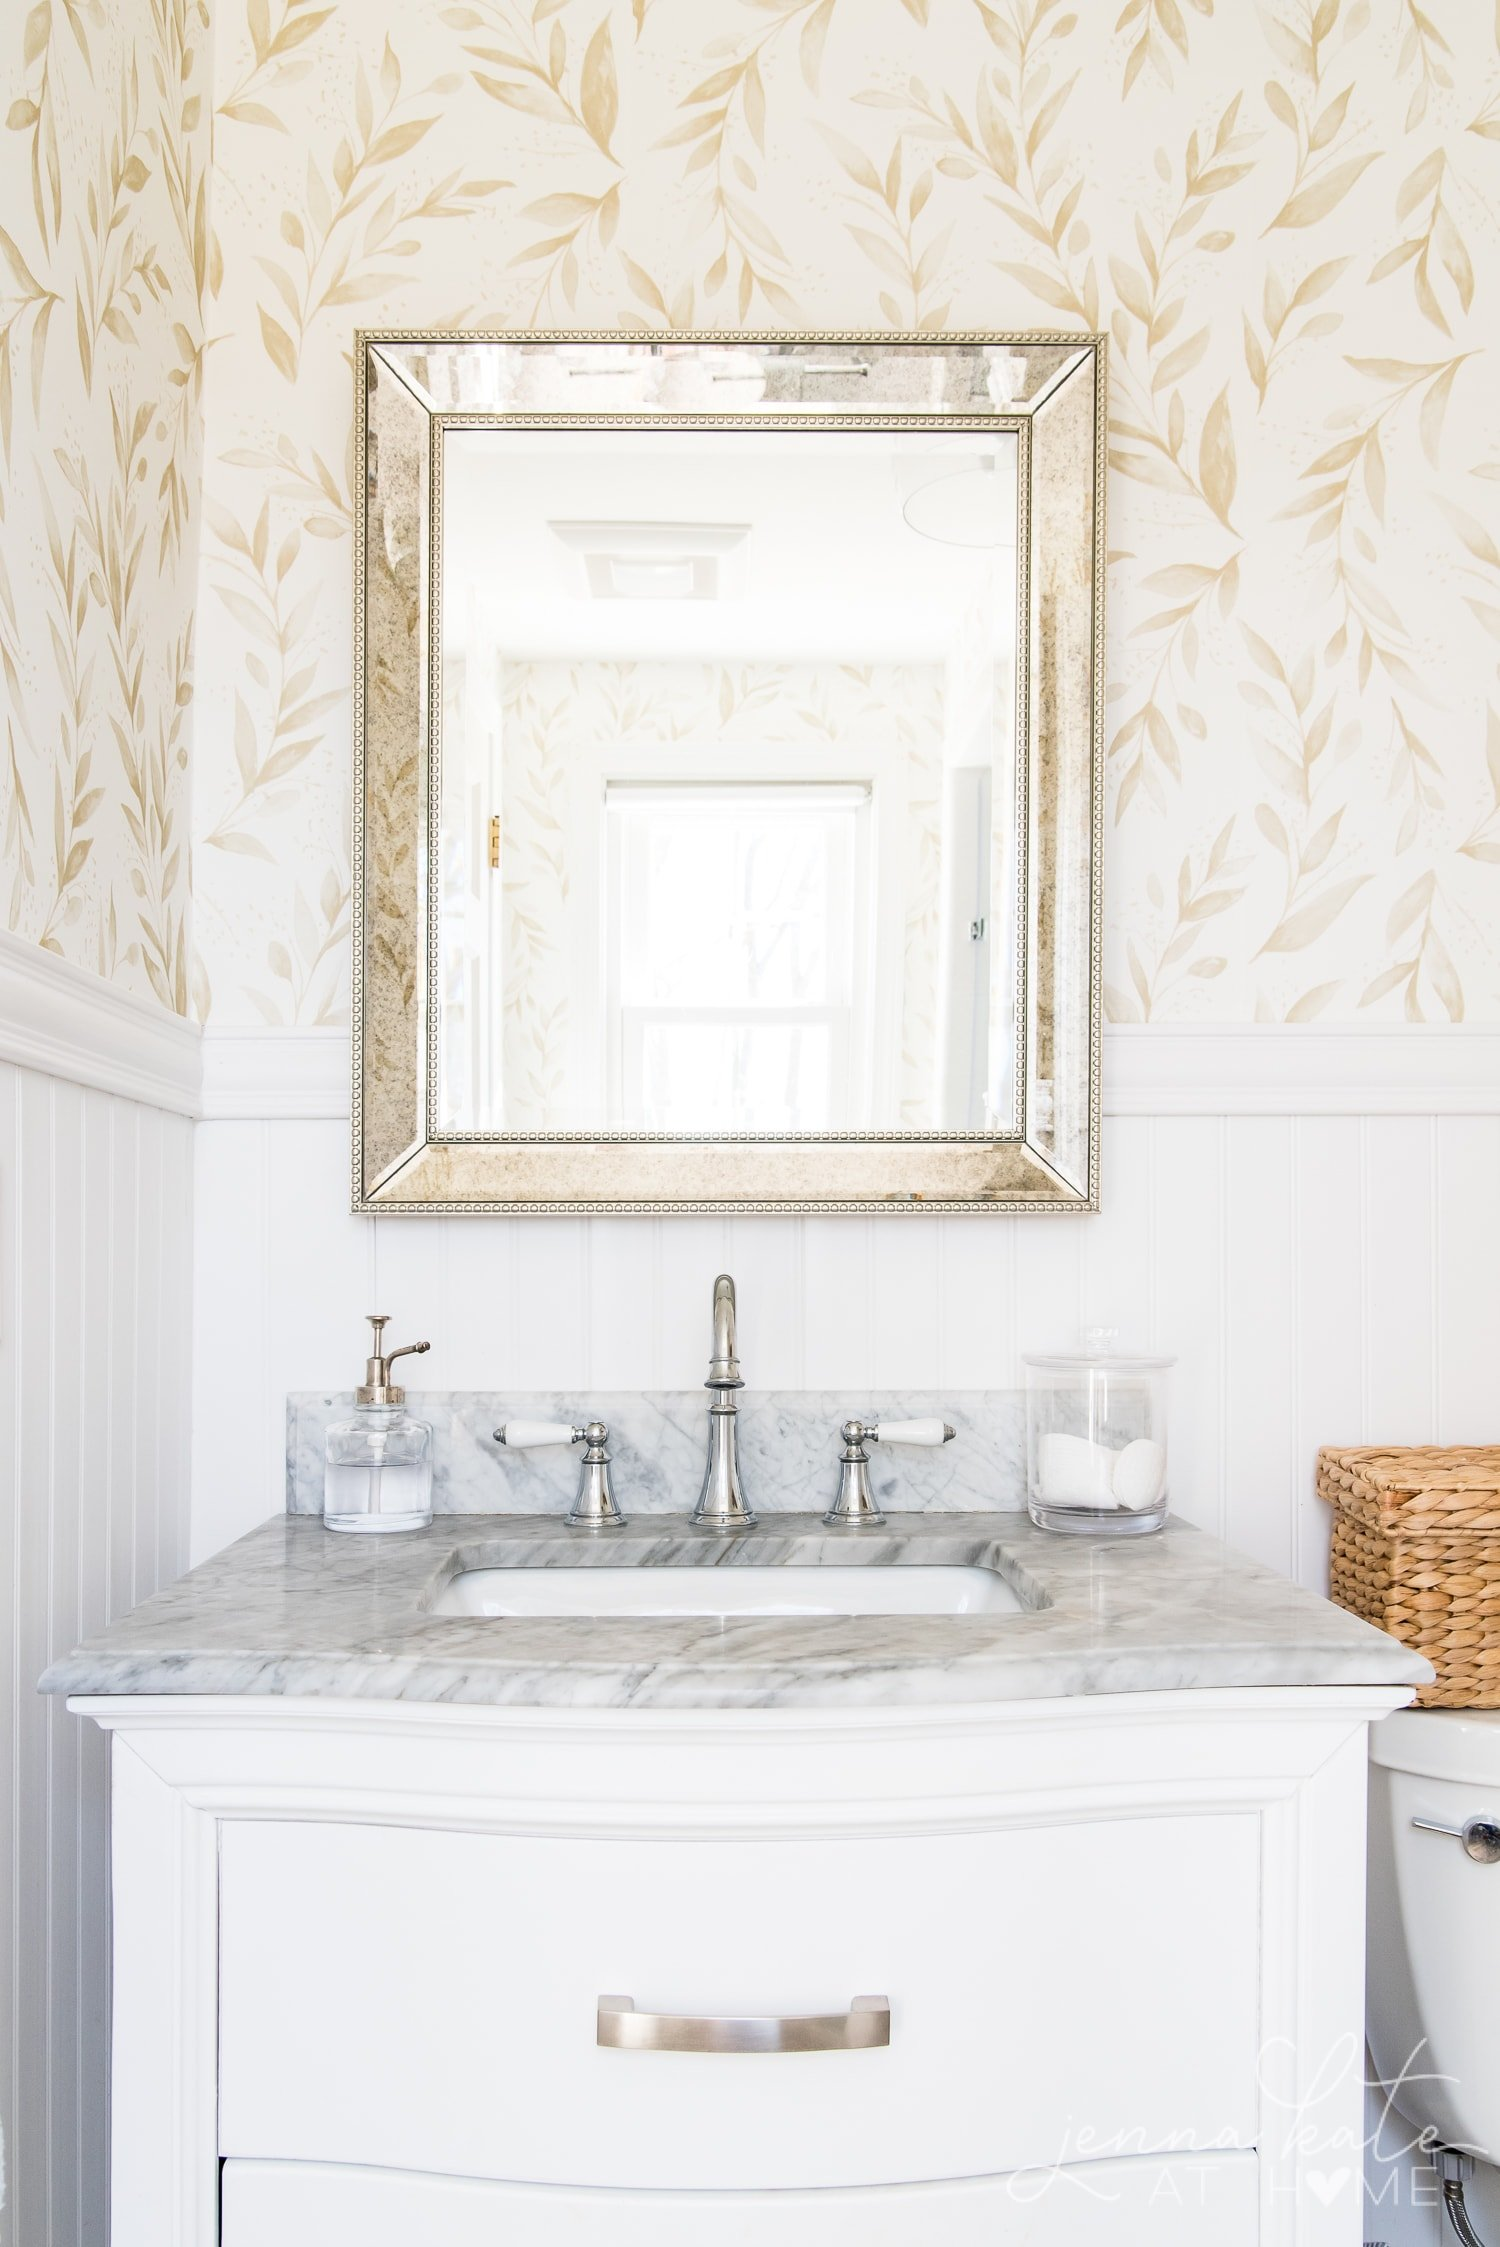 Elegant bathroom with floral wallpaper, chrome hardware and white vanity